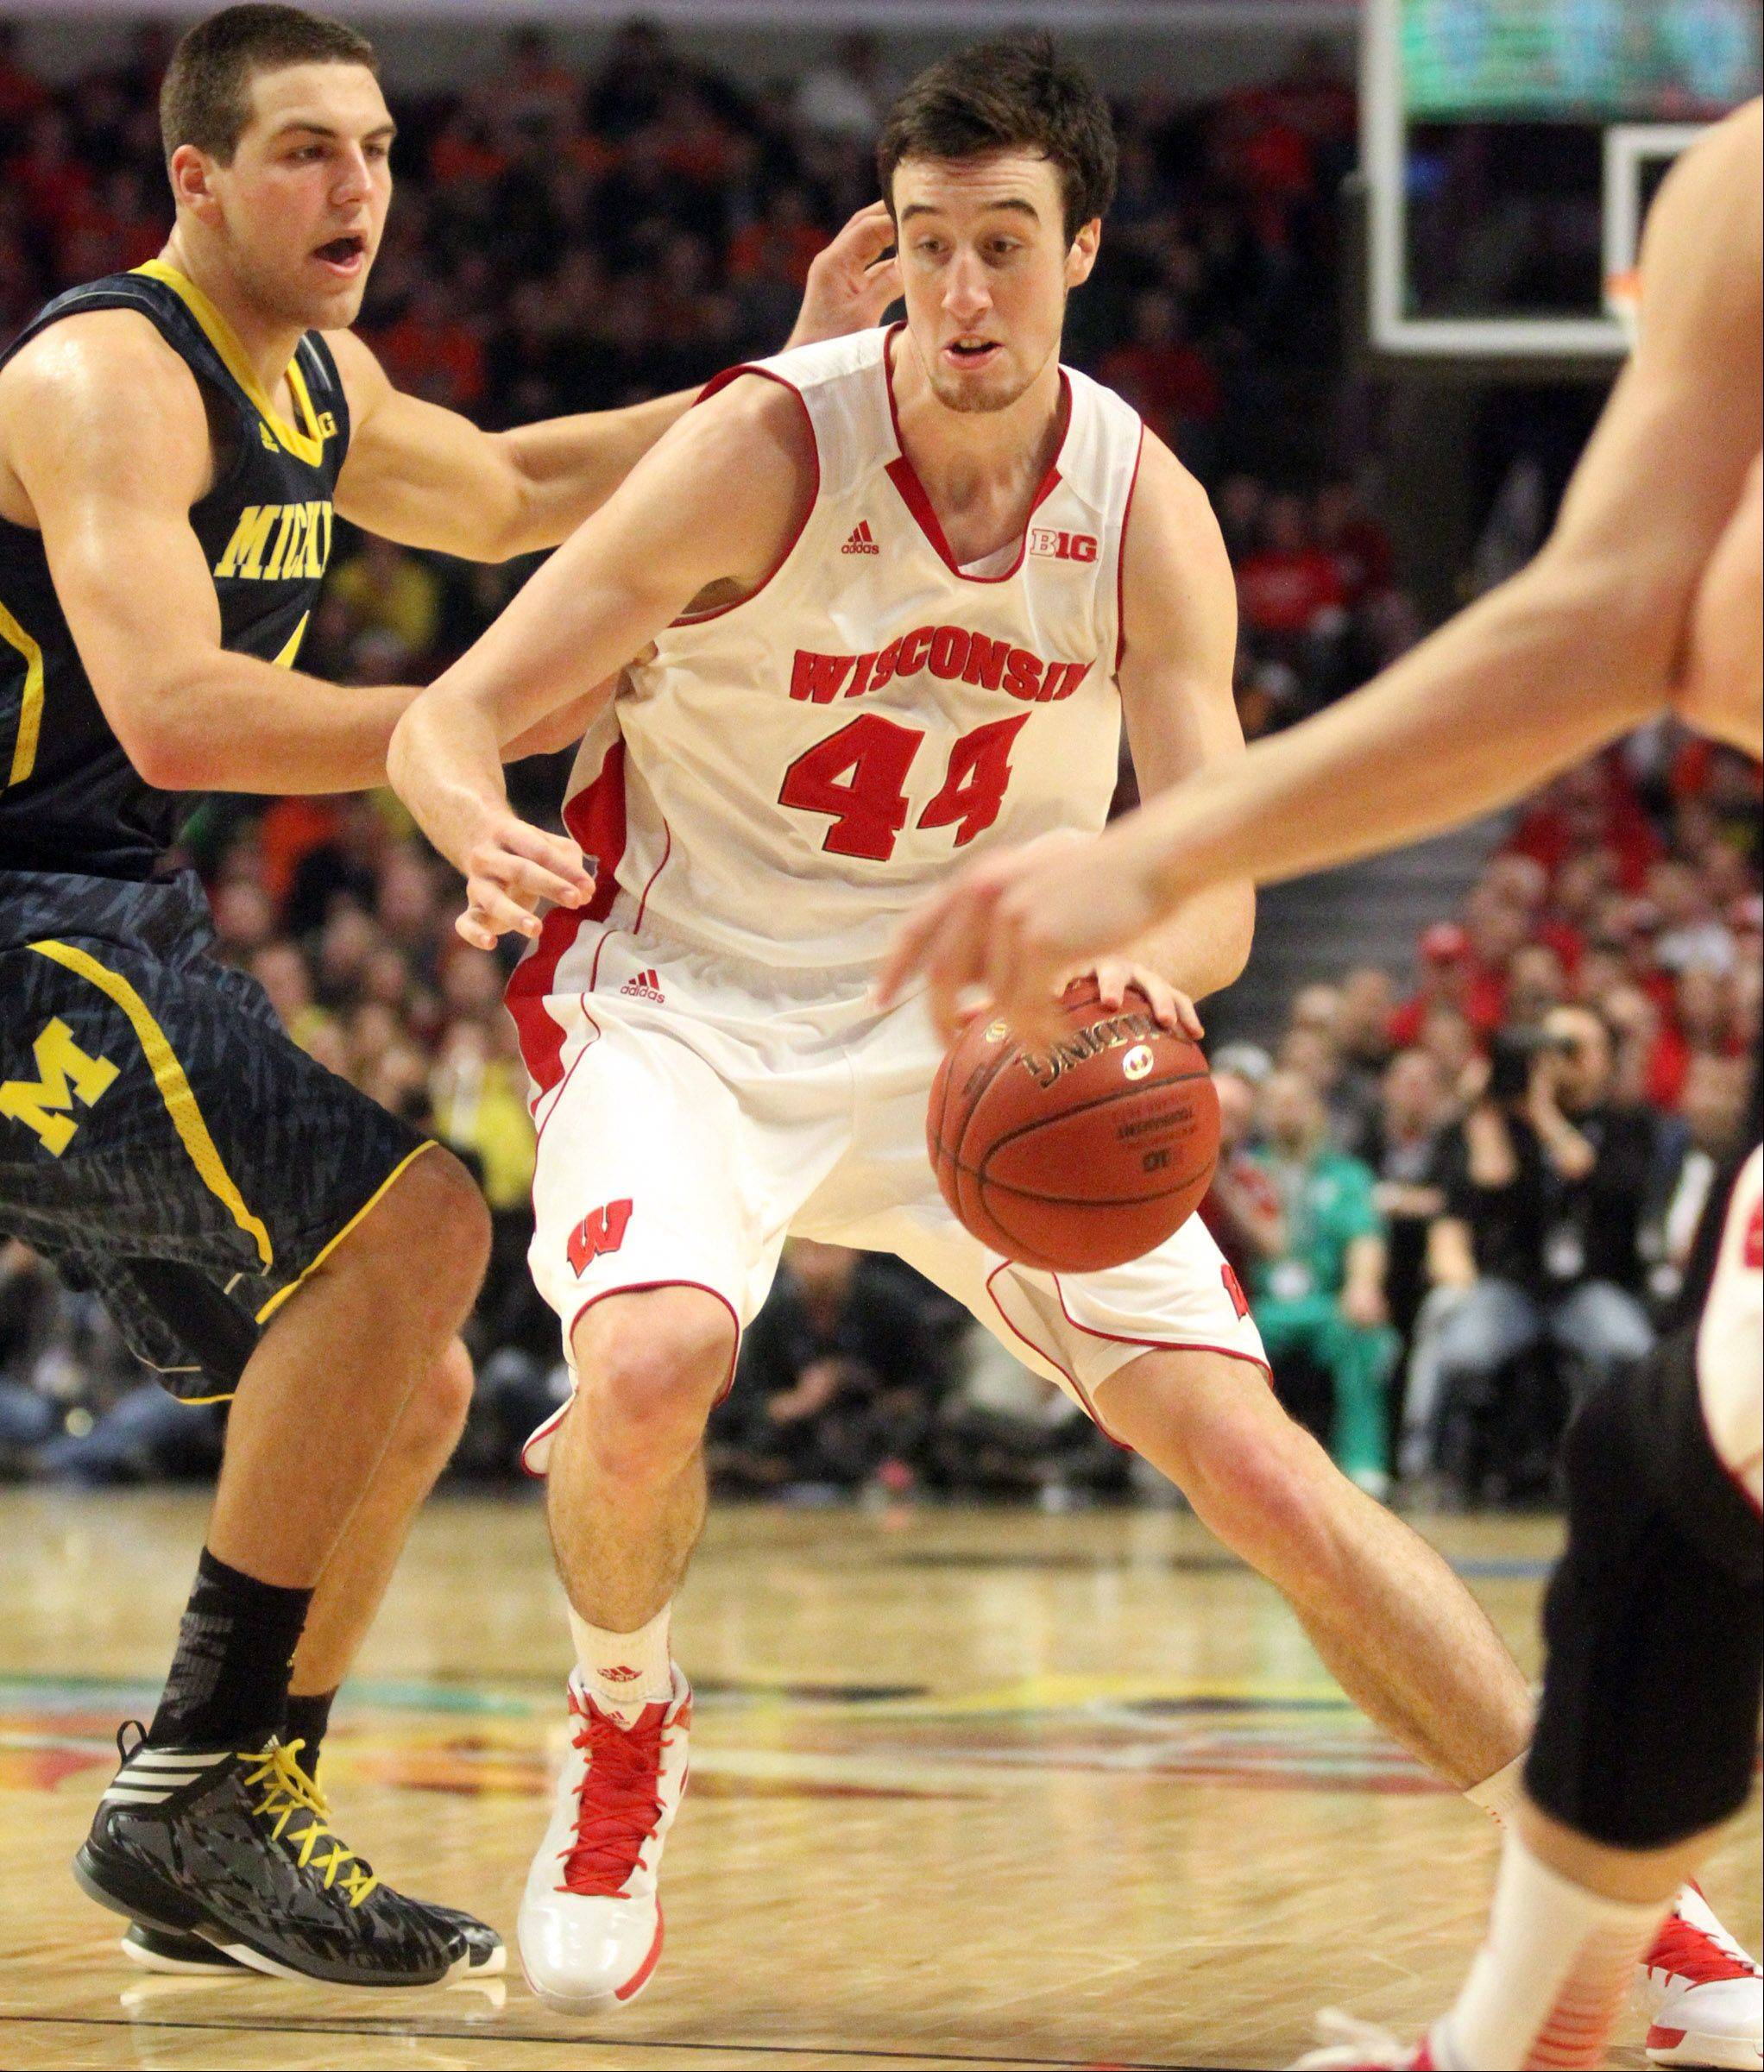 Wisconsin 6-11 forward Frank Kaminsky, who played at Benet Academy in Lisle, has been a key contributor to the team's success this season.